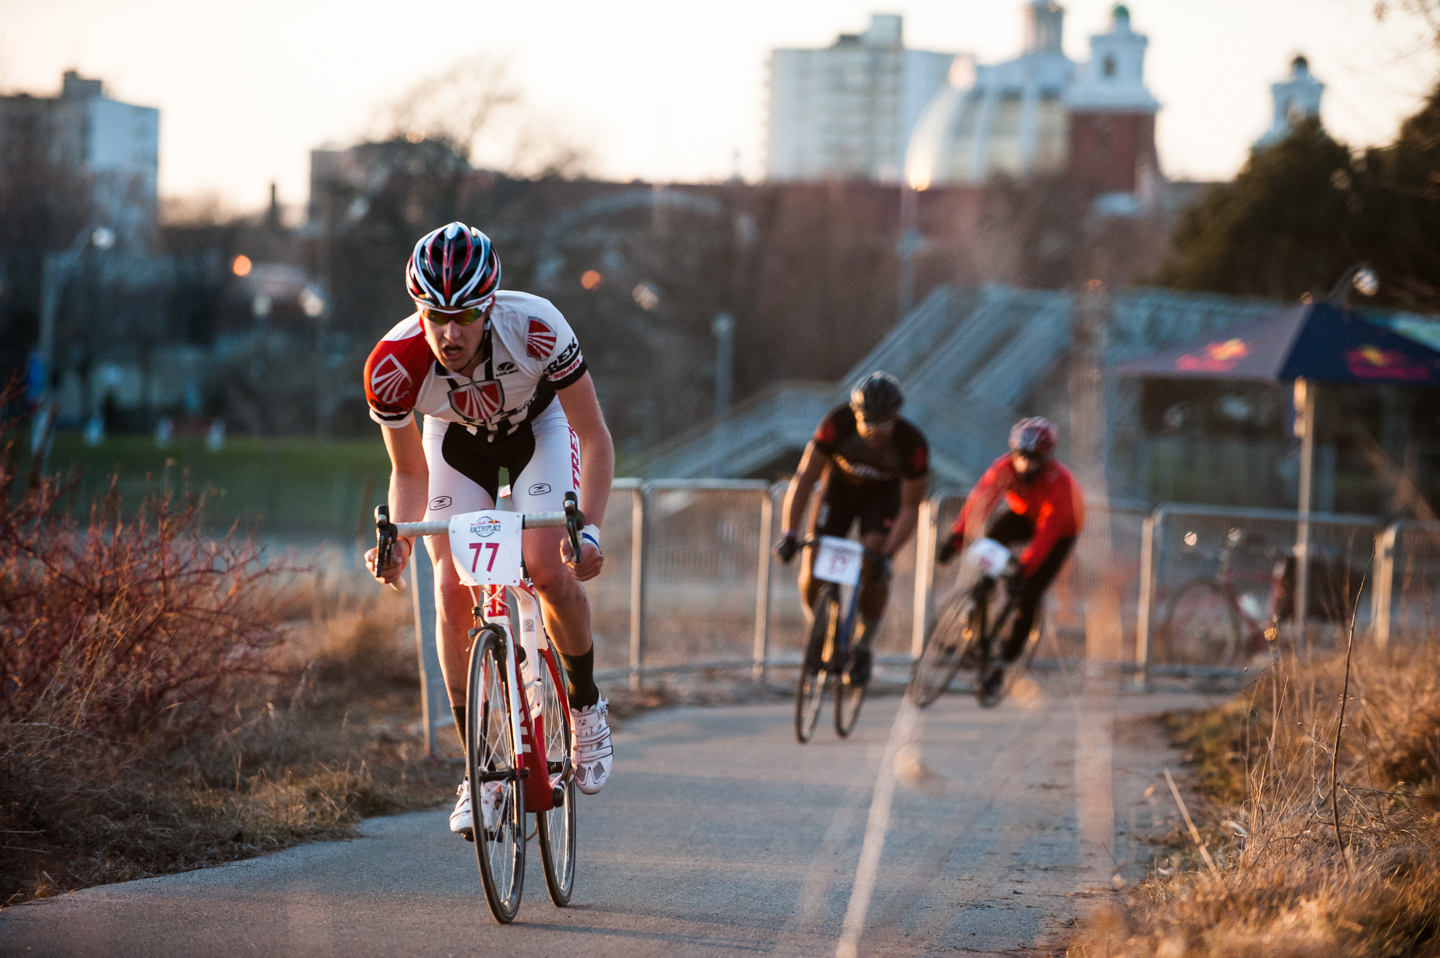 Athlete Chris Fruetel races at the Red Bull Race the Place in Toronto, Canada on April the 19th, 2014